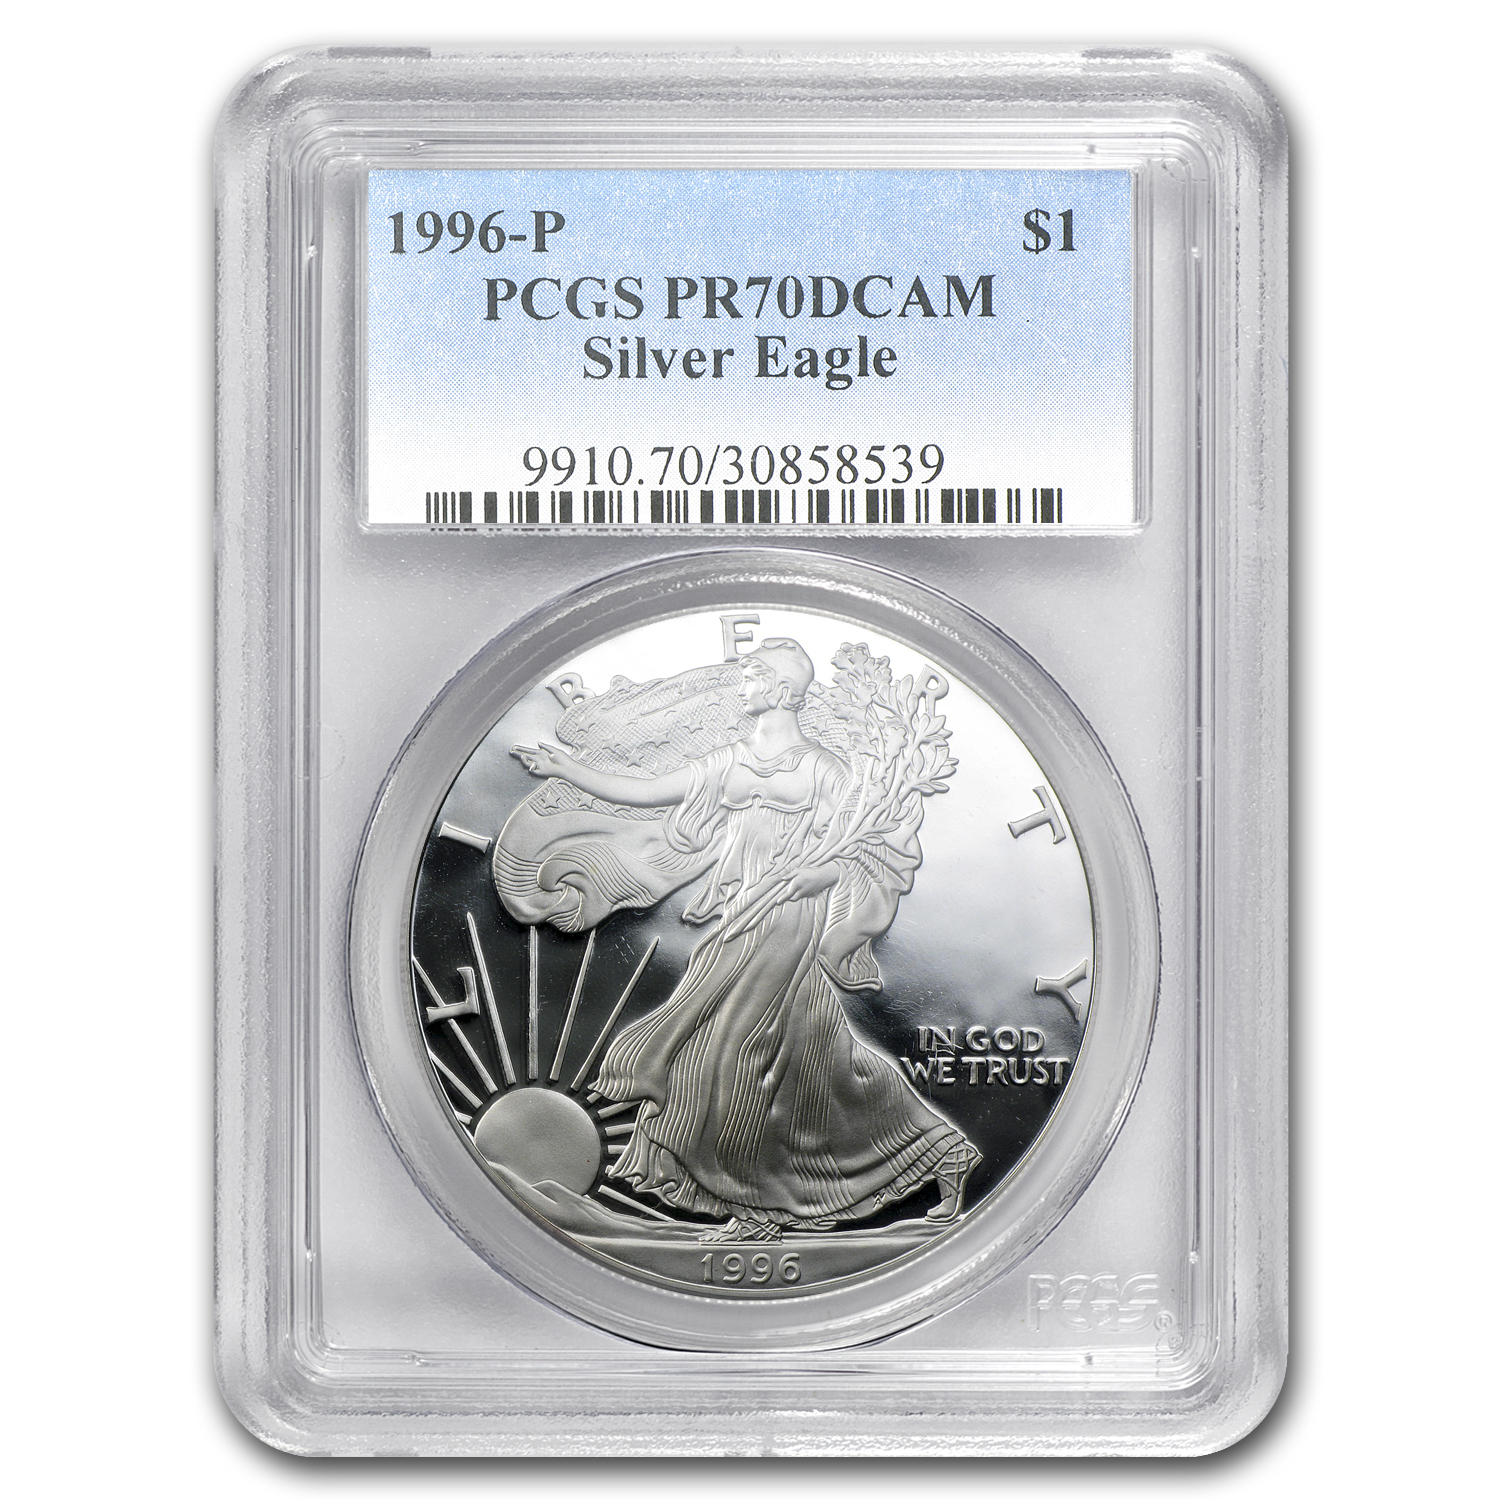 1996-P Proof Silver American Eagle PR-70 PCGS (Registry Set)